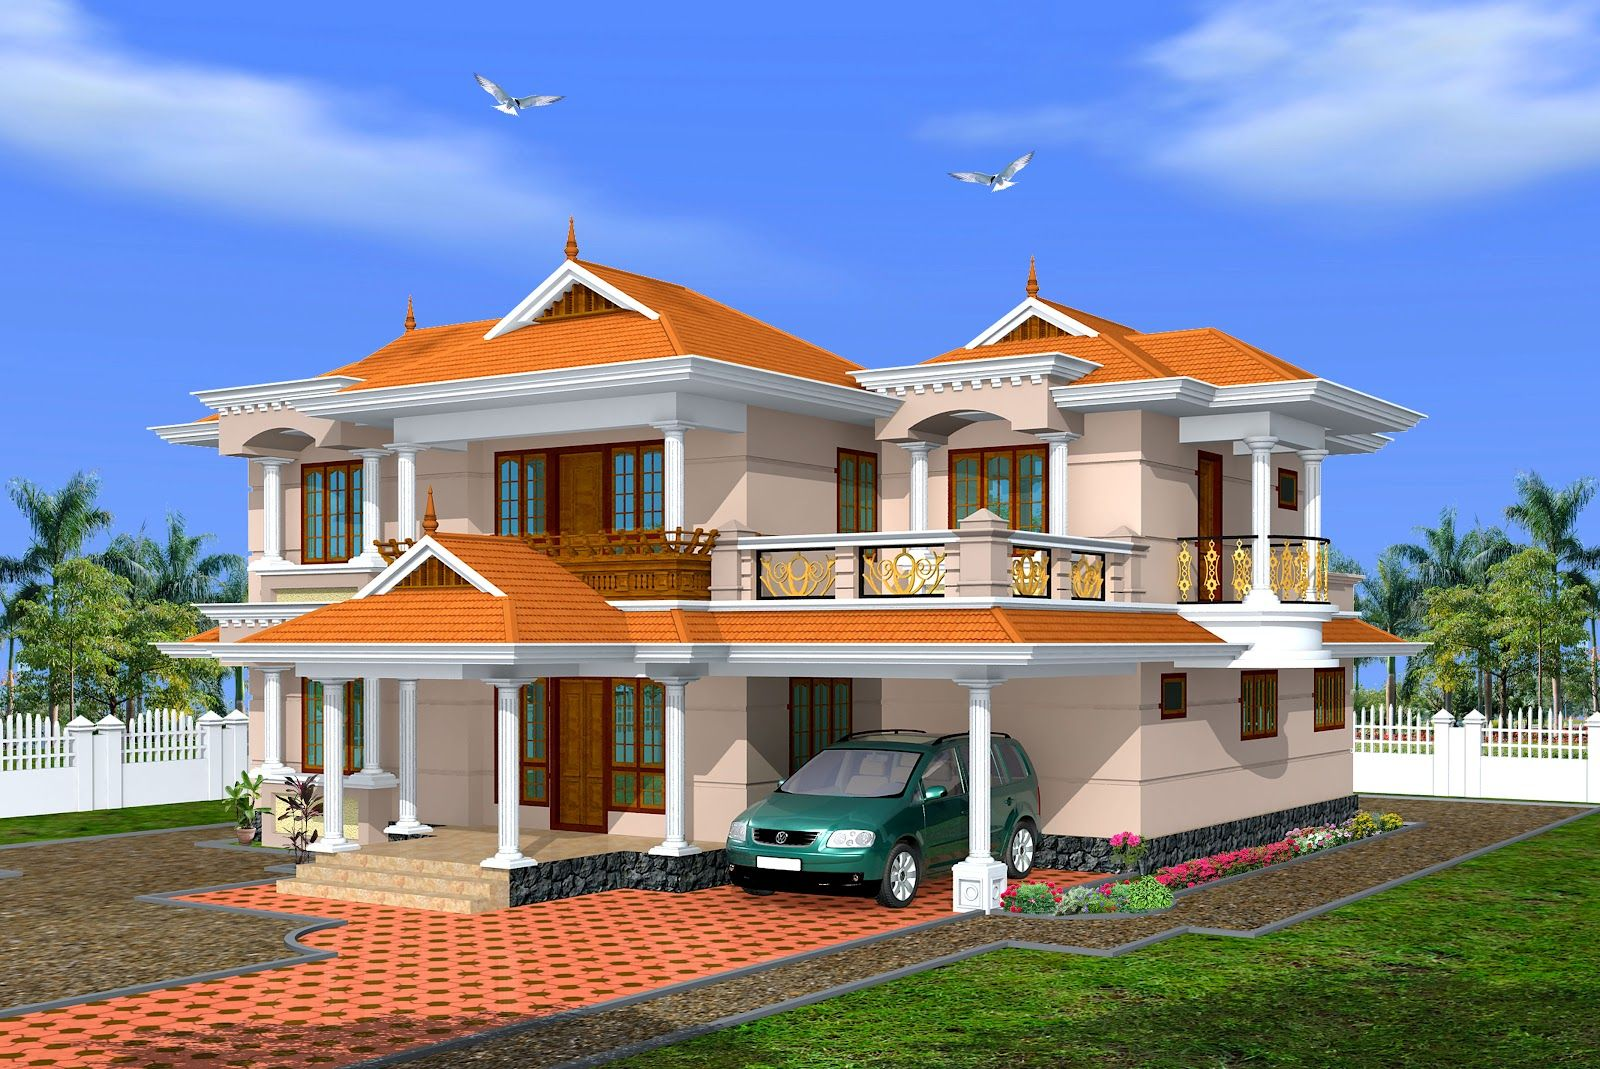 brilliant home design images. Home specification Built Up Area sq feet About design 2700  kerala most wanted thoughts from Green Homes team Creative Exterior Design Attractive Kerala Villa s Indian